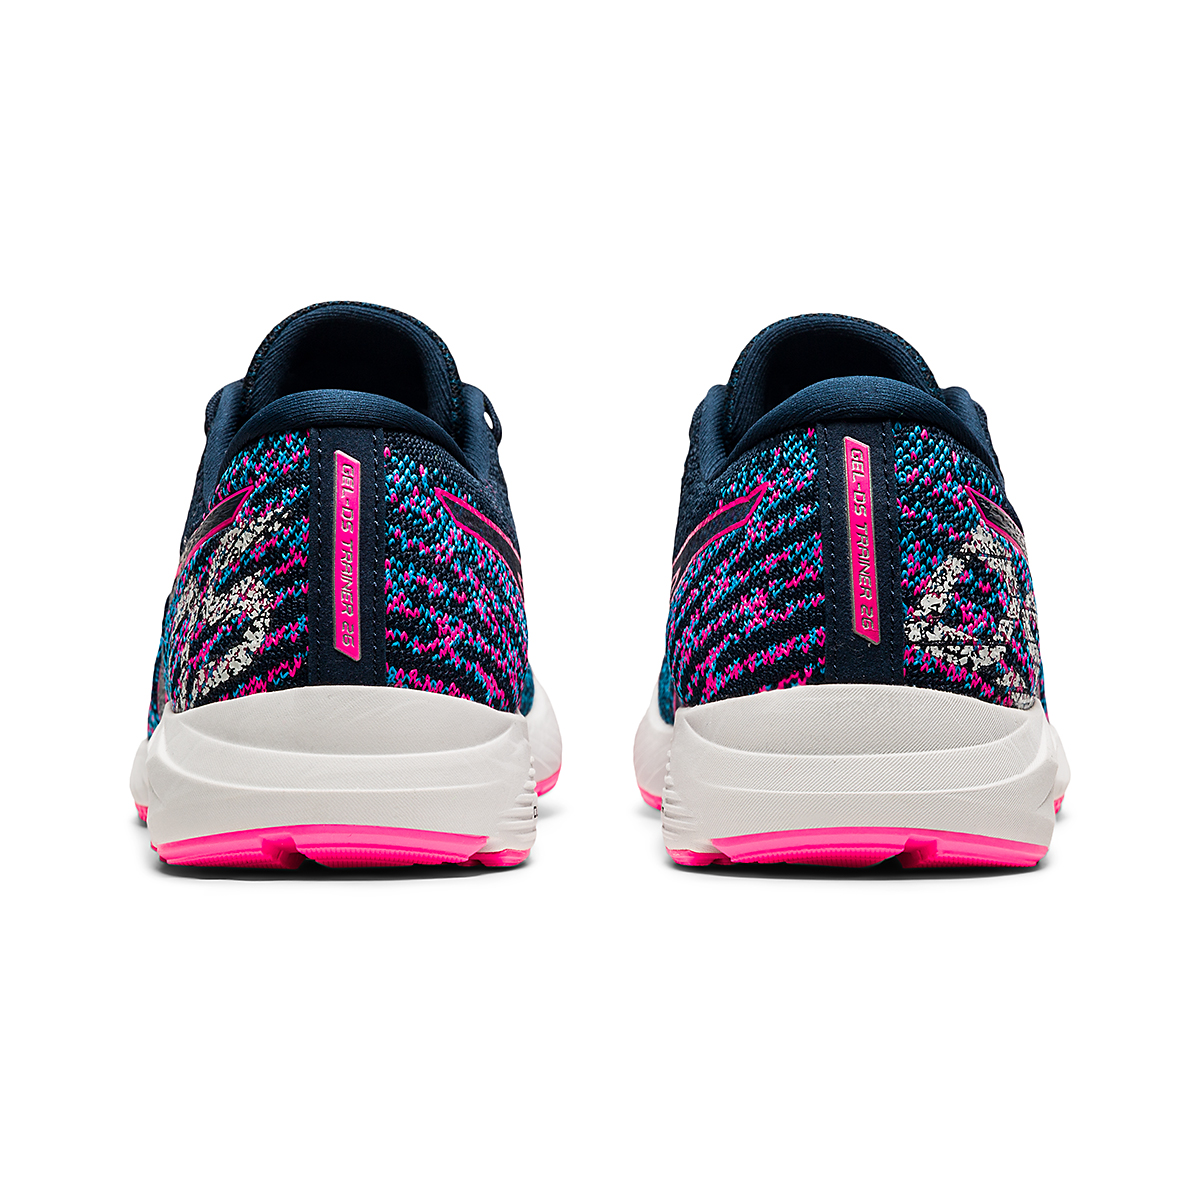 Women's Asics Gel-DS Trainer 26 Running Shoe - Color: French Blue/Hot Pink - Size: 5 - Width: Regular, French Blue/Hot Pink, large, image 5